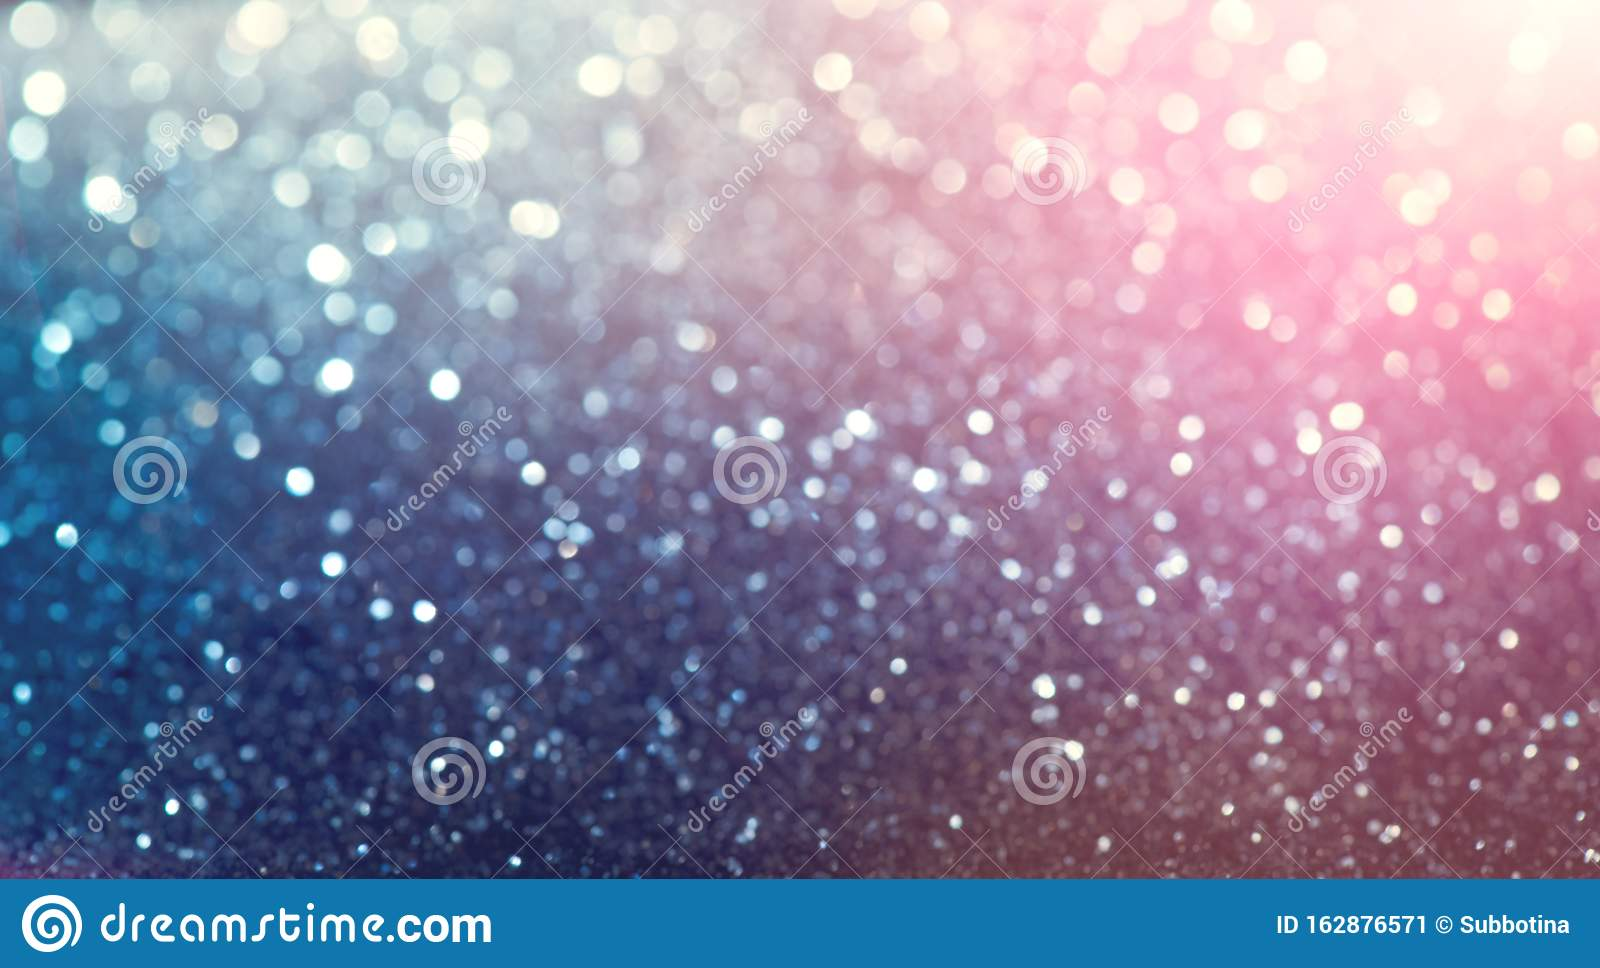 Christmas colorful vintage background. Holiday glowing backdrop. Defocused Background With Blinking Stars